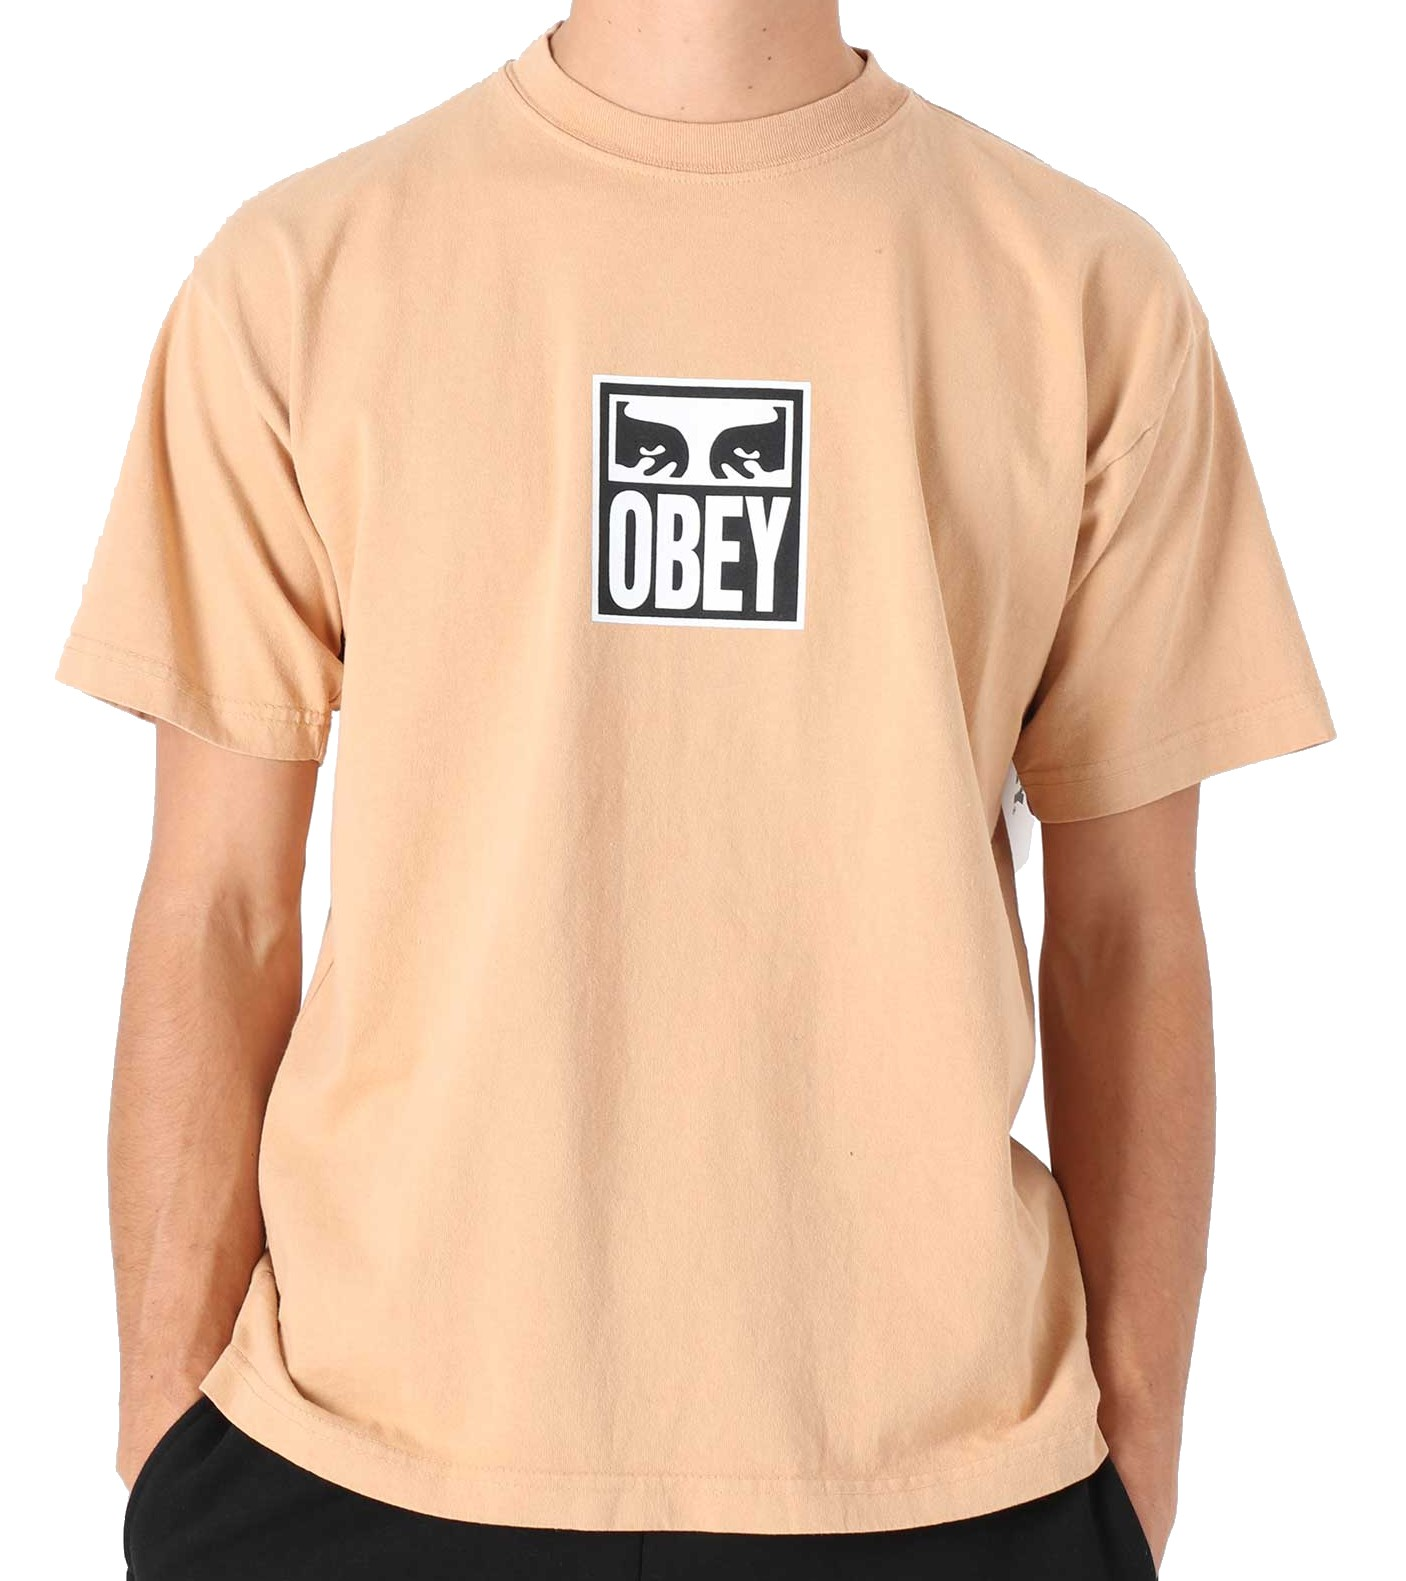 OBEY EYES ICON 3 HEAVYWEIGHT T-SHIRT - LIGHT TOFFEE